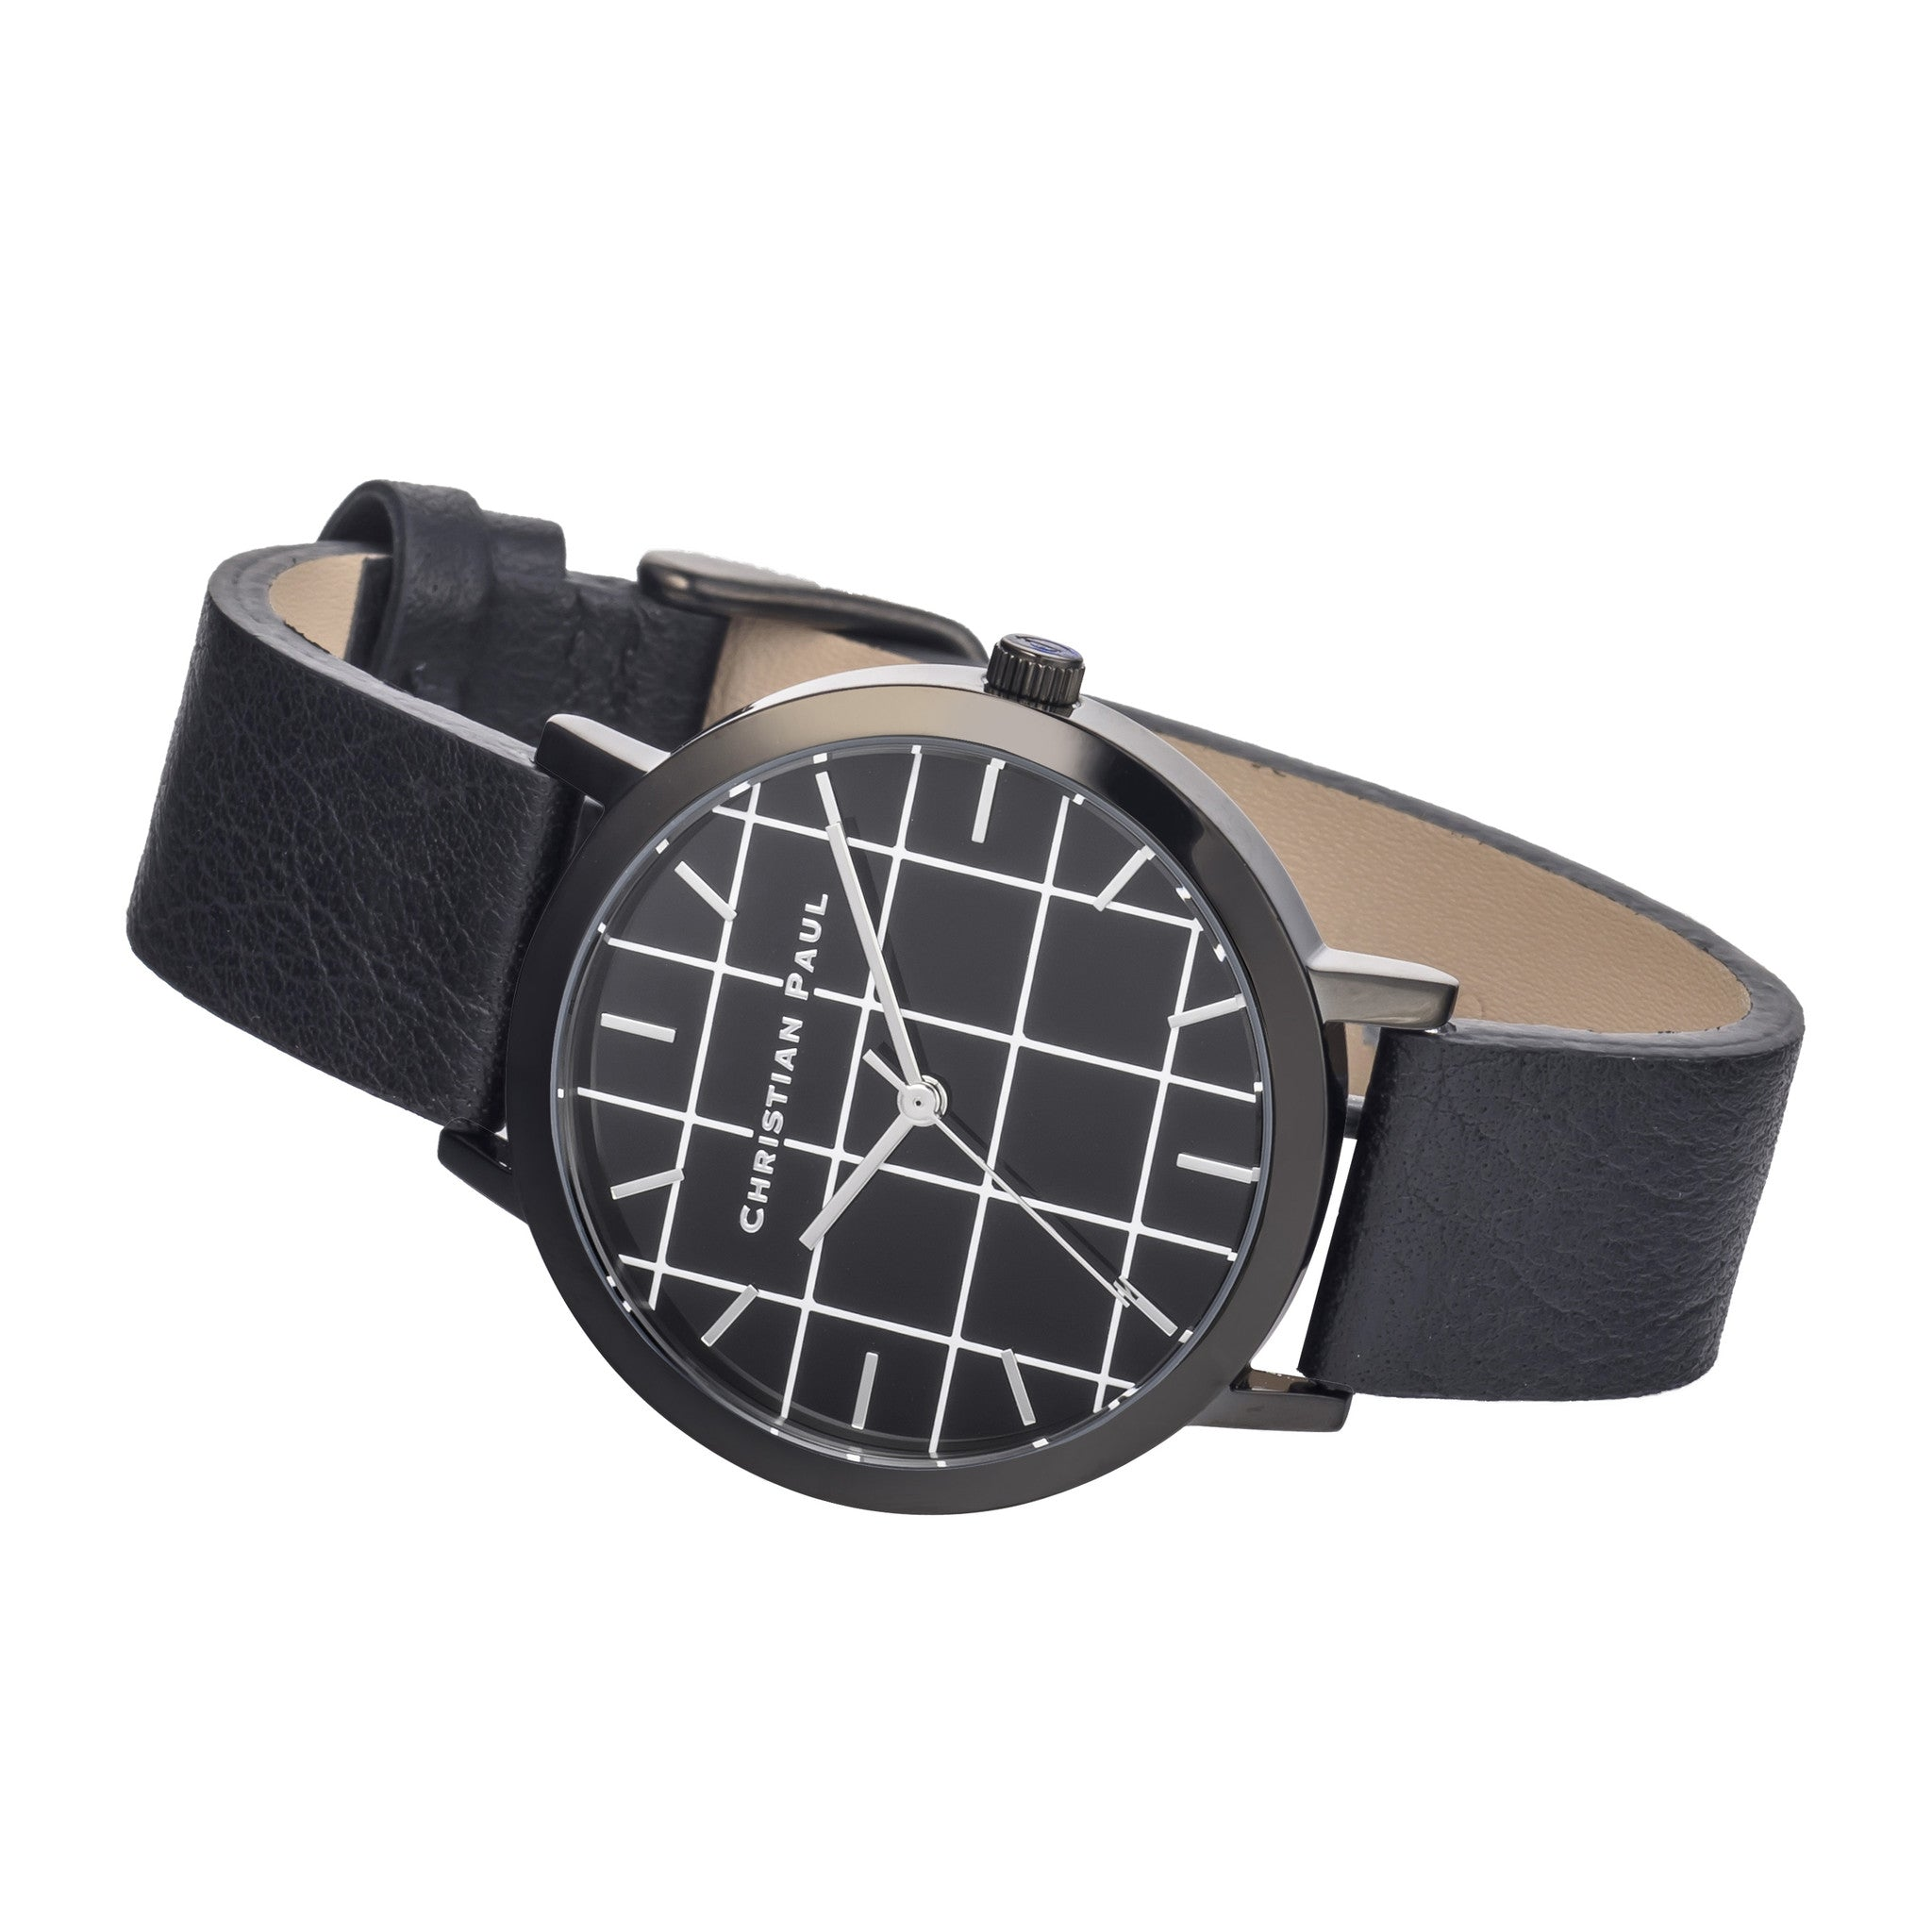 Christian Paul Watch The Strand Grid 35mm / Black on Black